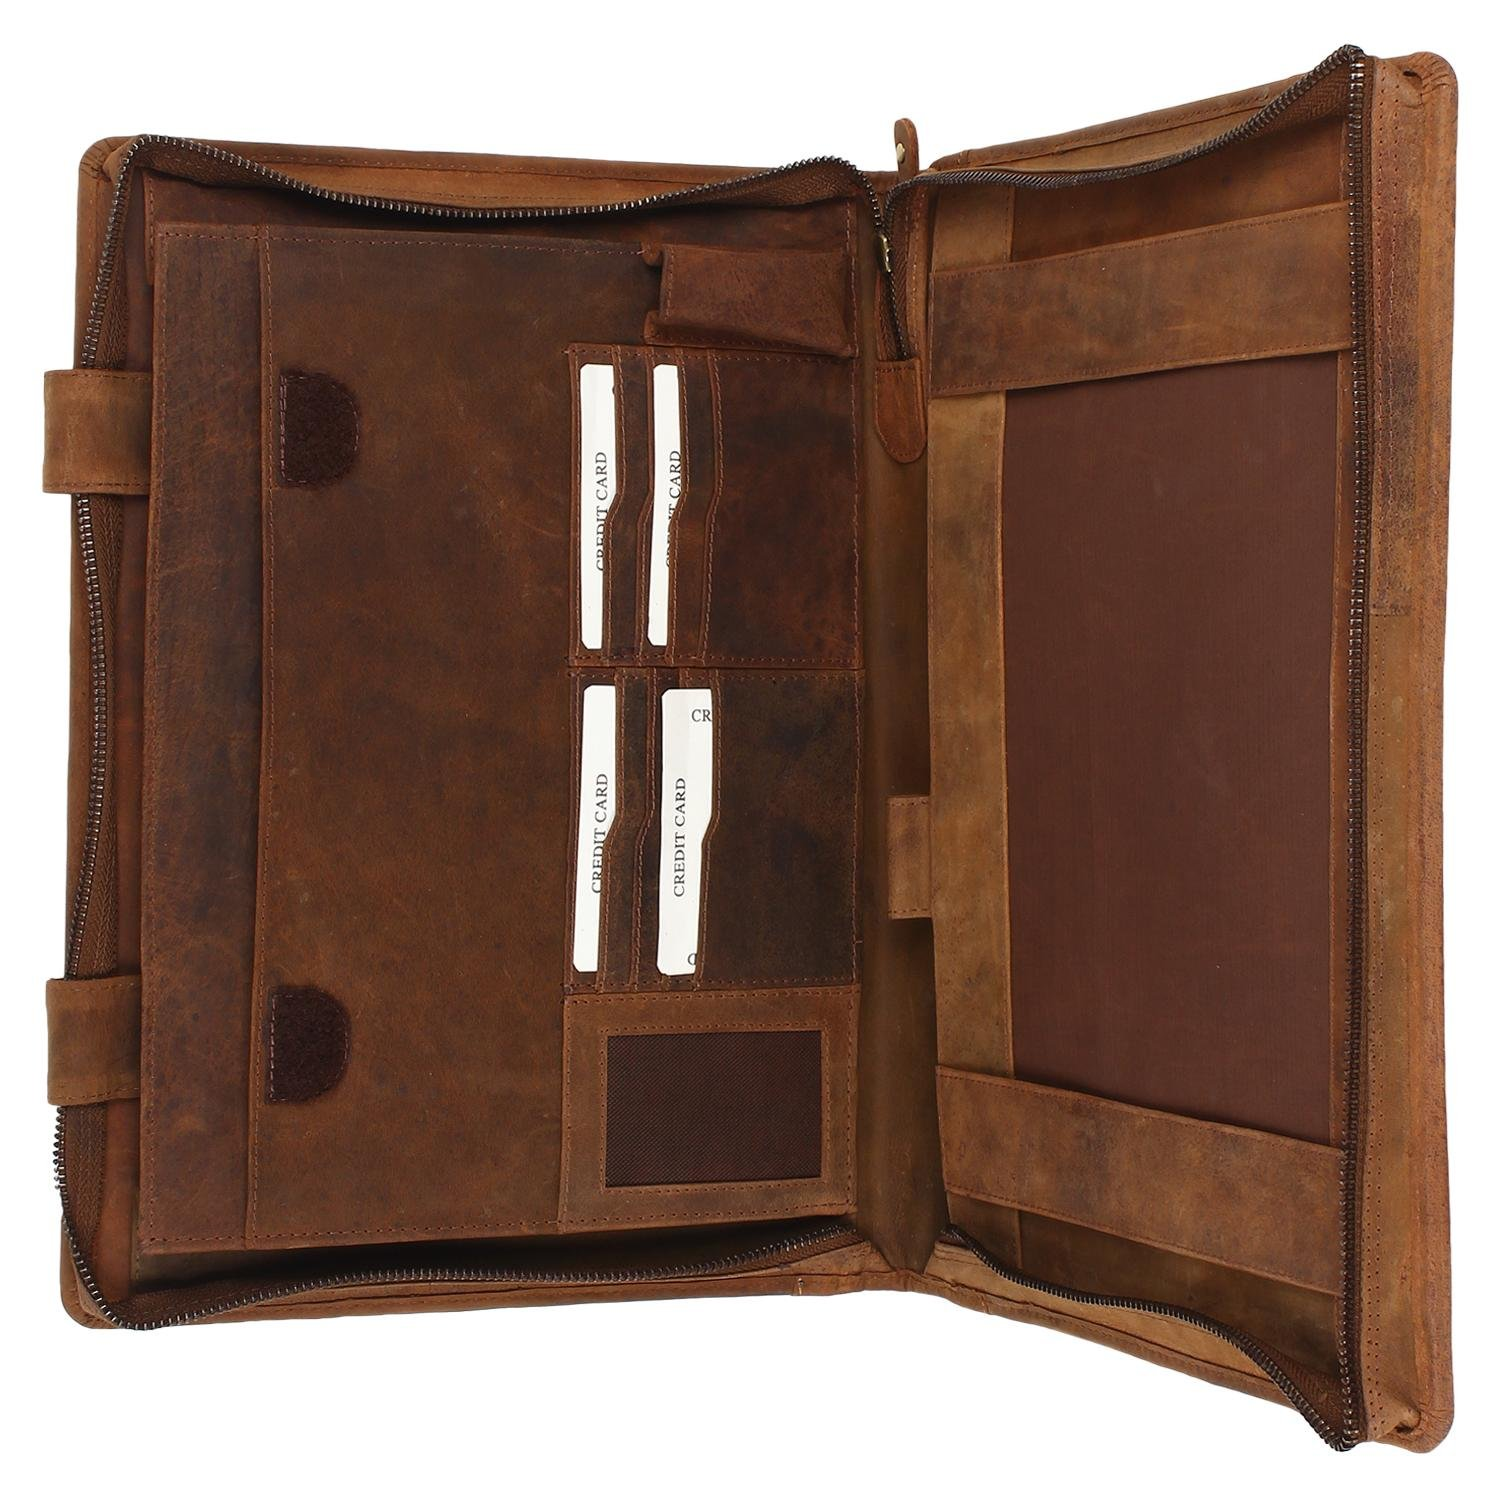 Supreme Business Portfolio By Rustic Town   Professional Organizer For Men & Women   Durable Leather Padfolio   Easy To Carry With A Zippered Closure   Many Slots, Compartments & Holders